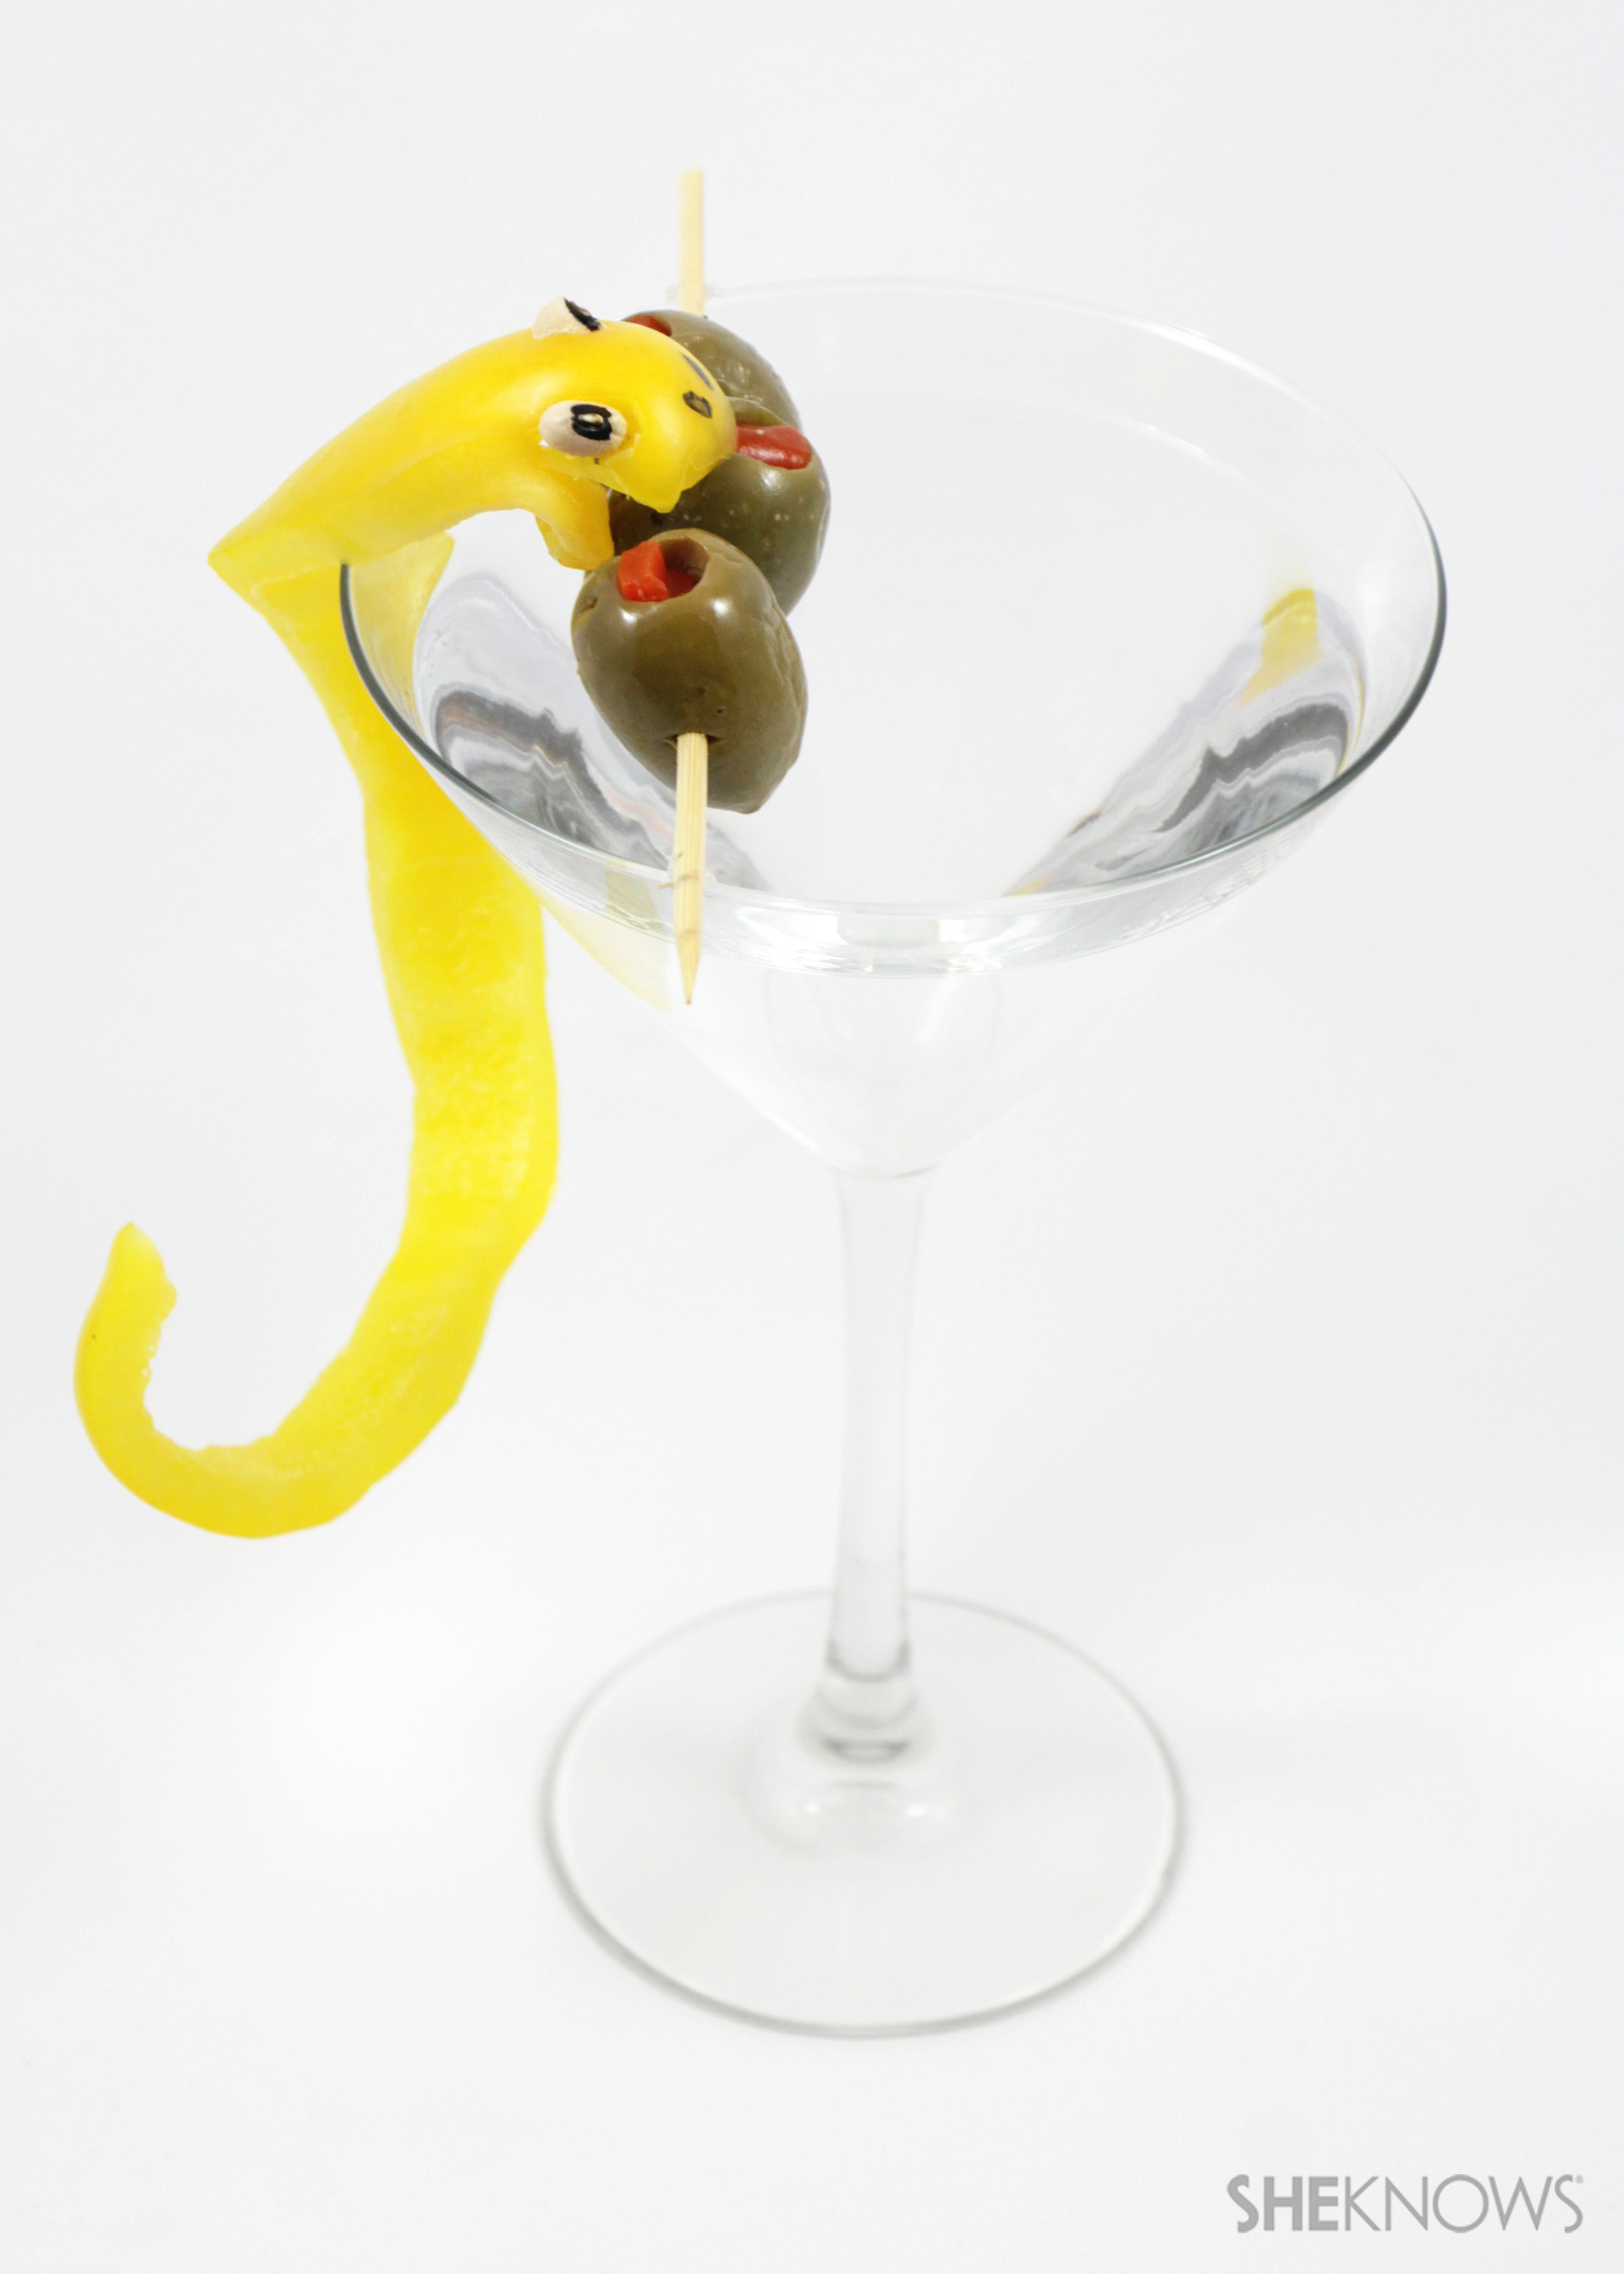 Snake cocktail critters